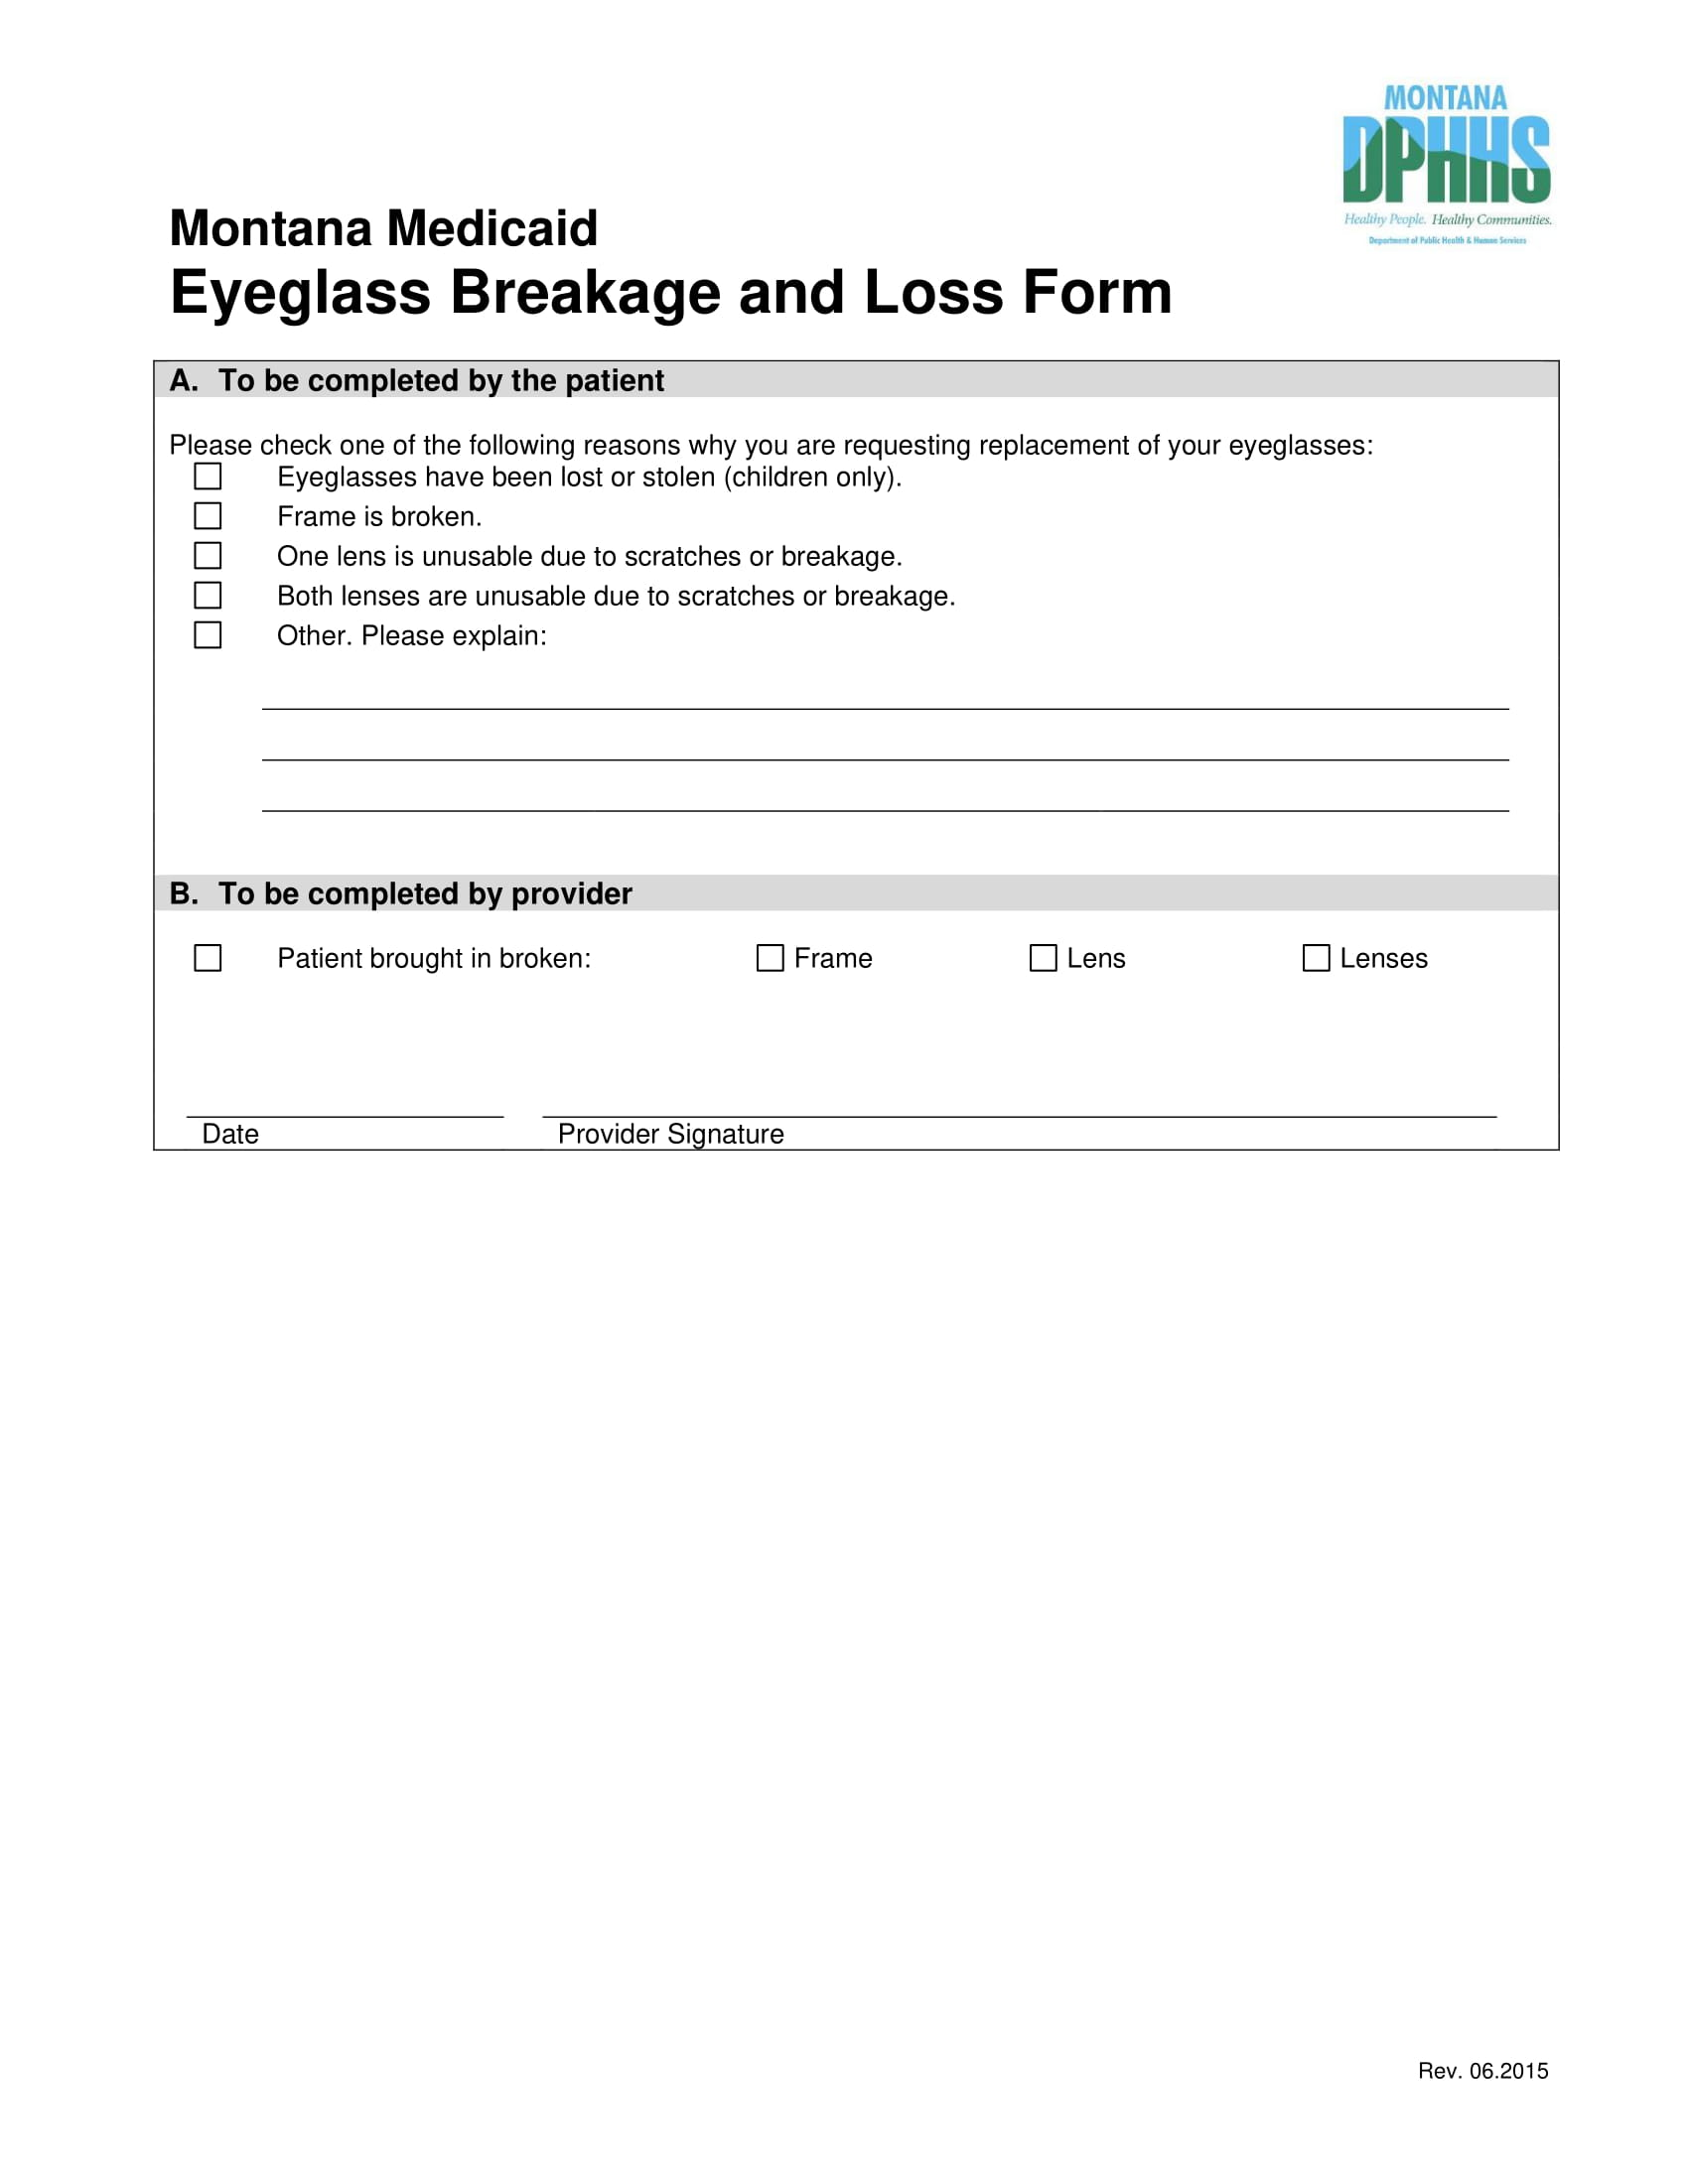 eyeglass breakage and loss form